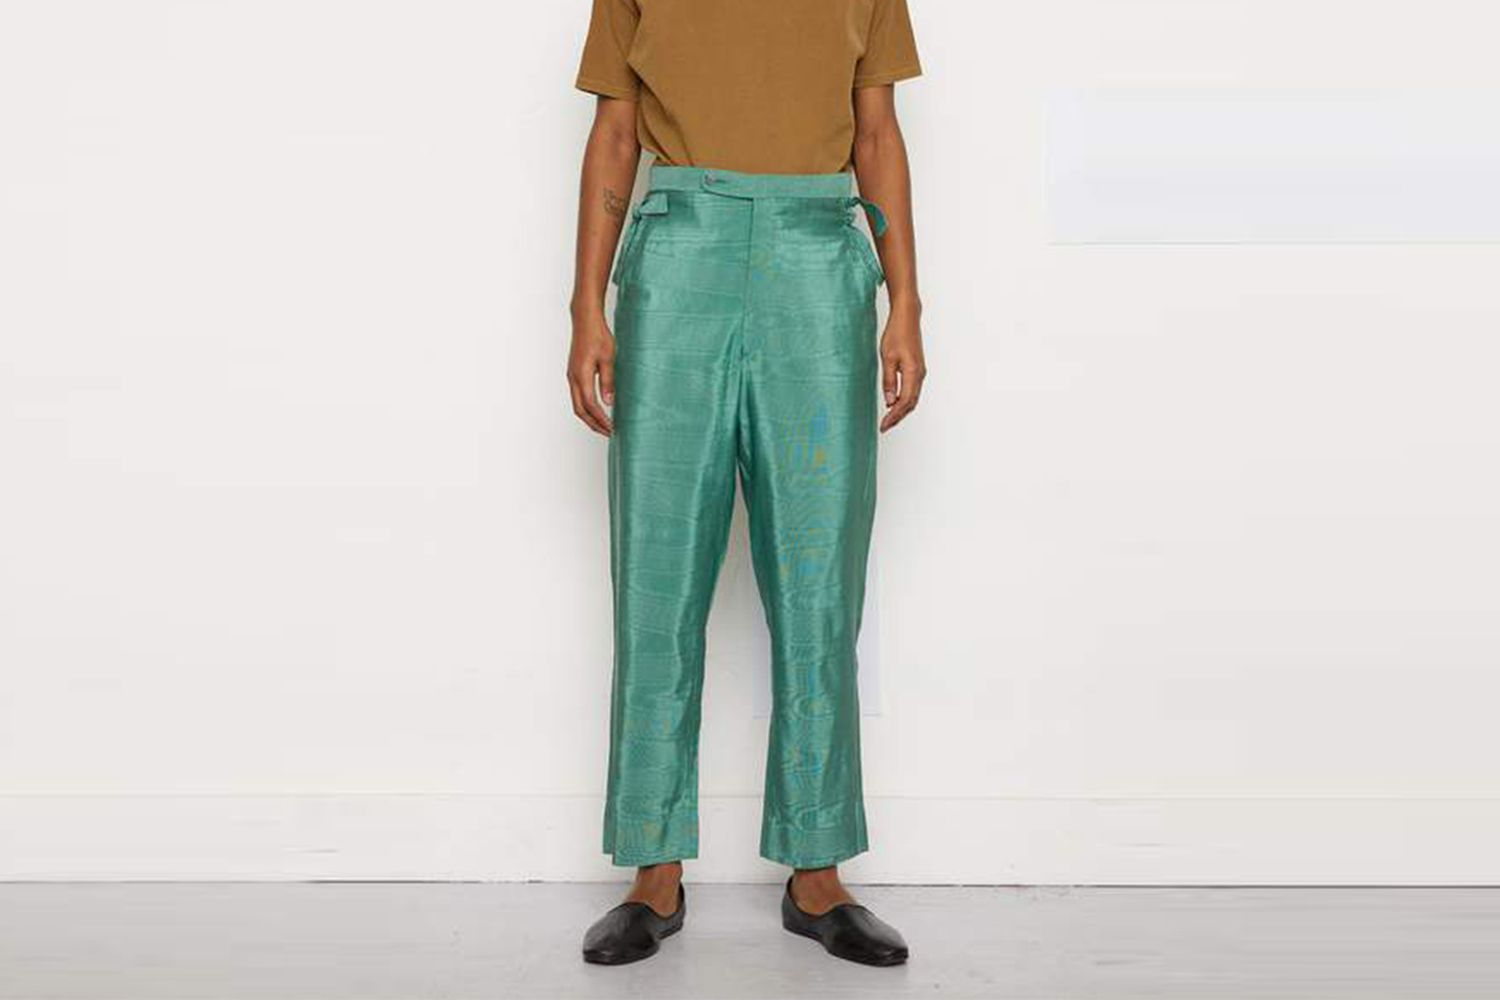 Green Moire Trousers